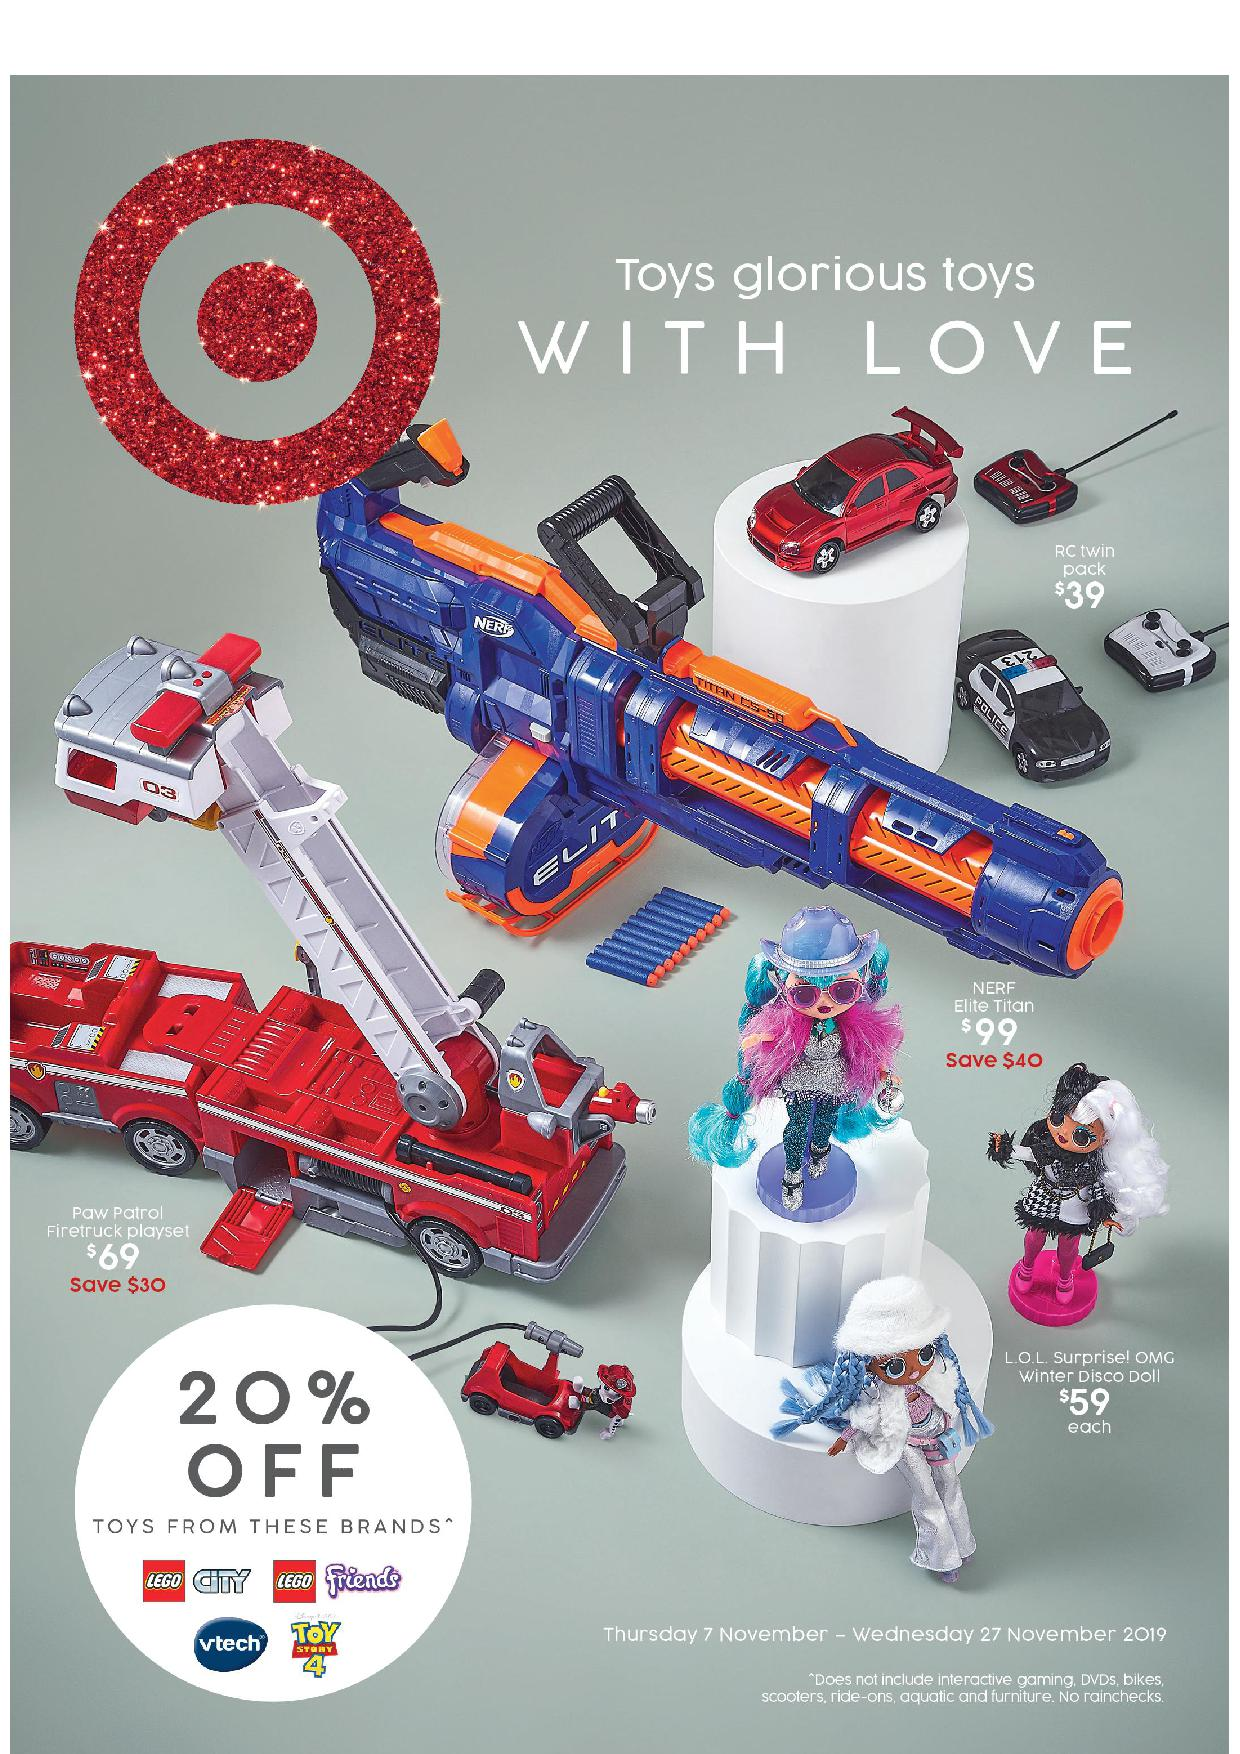 Target Catalogue 7 November - 27 November 2019. Toys Glorious Toys With Love!